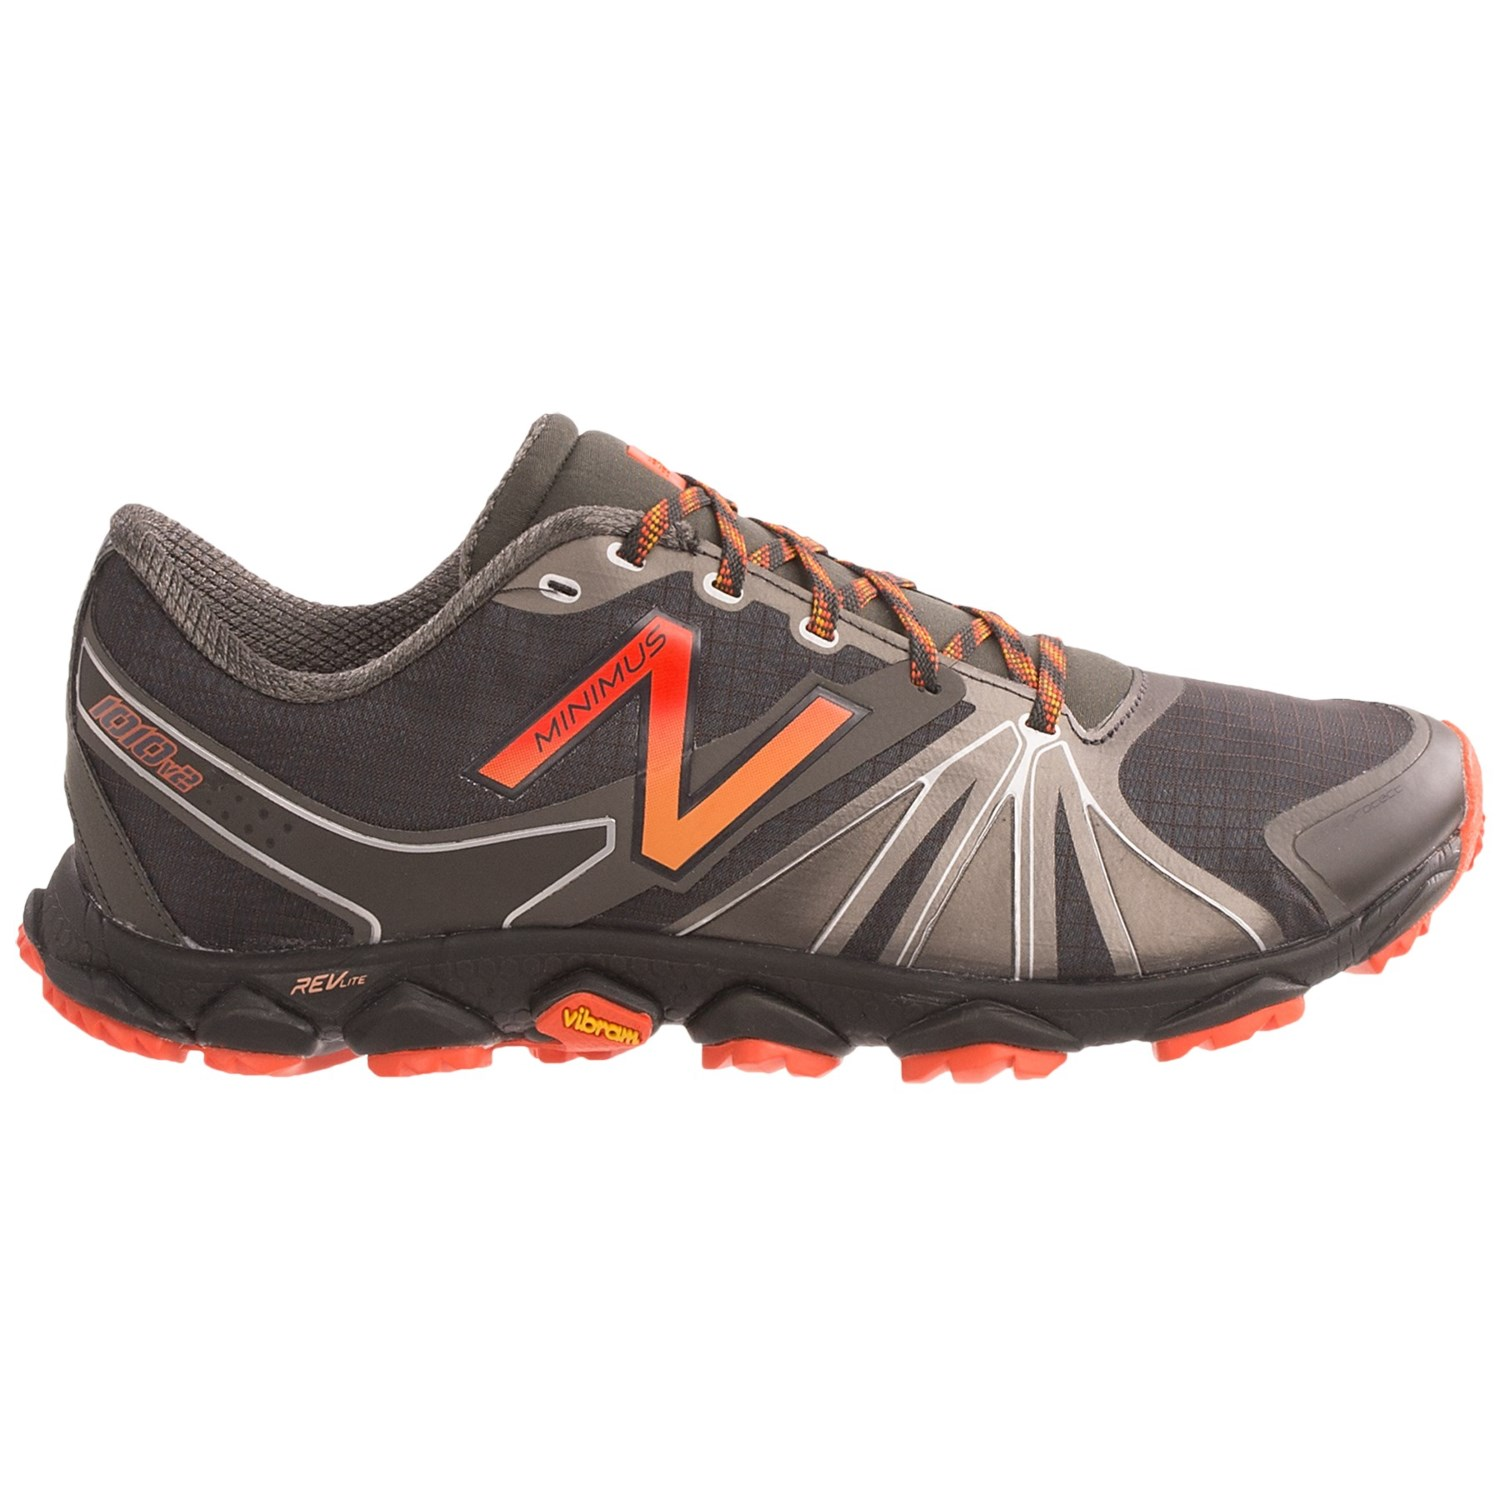 new balance minimus 1010v2 trail running shoes for